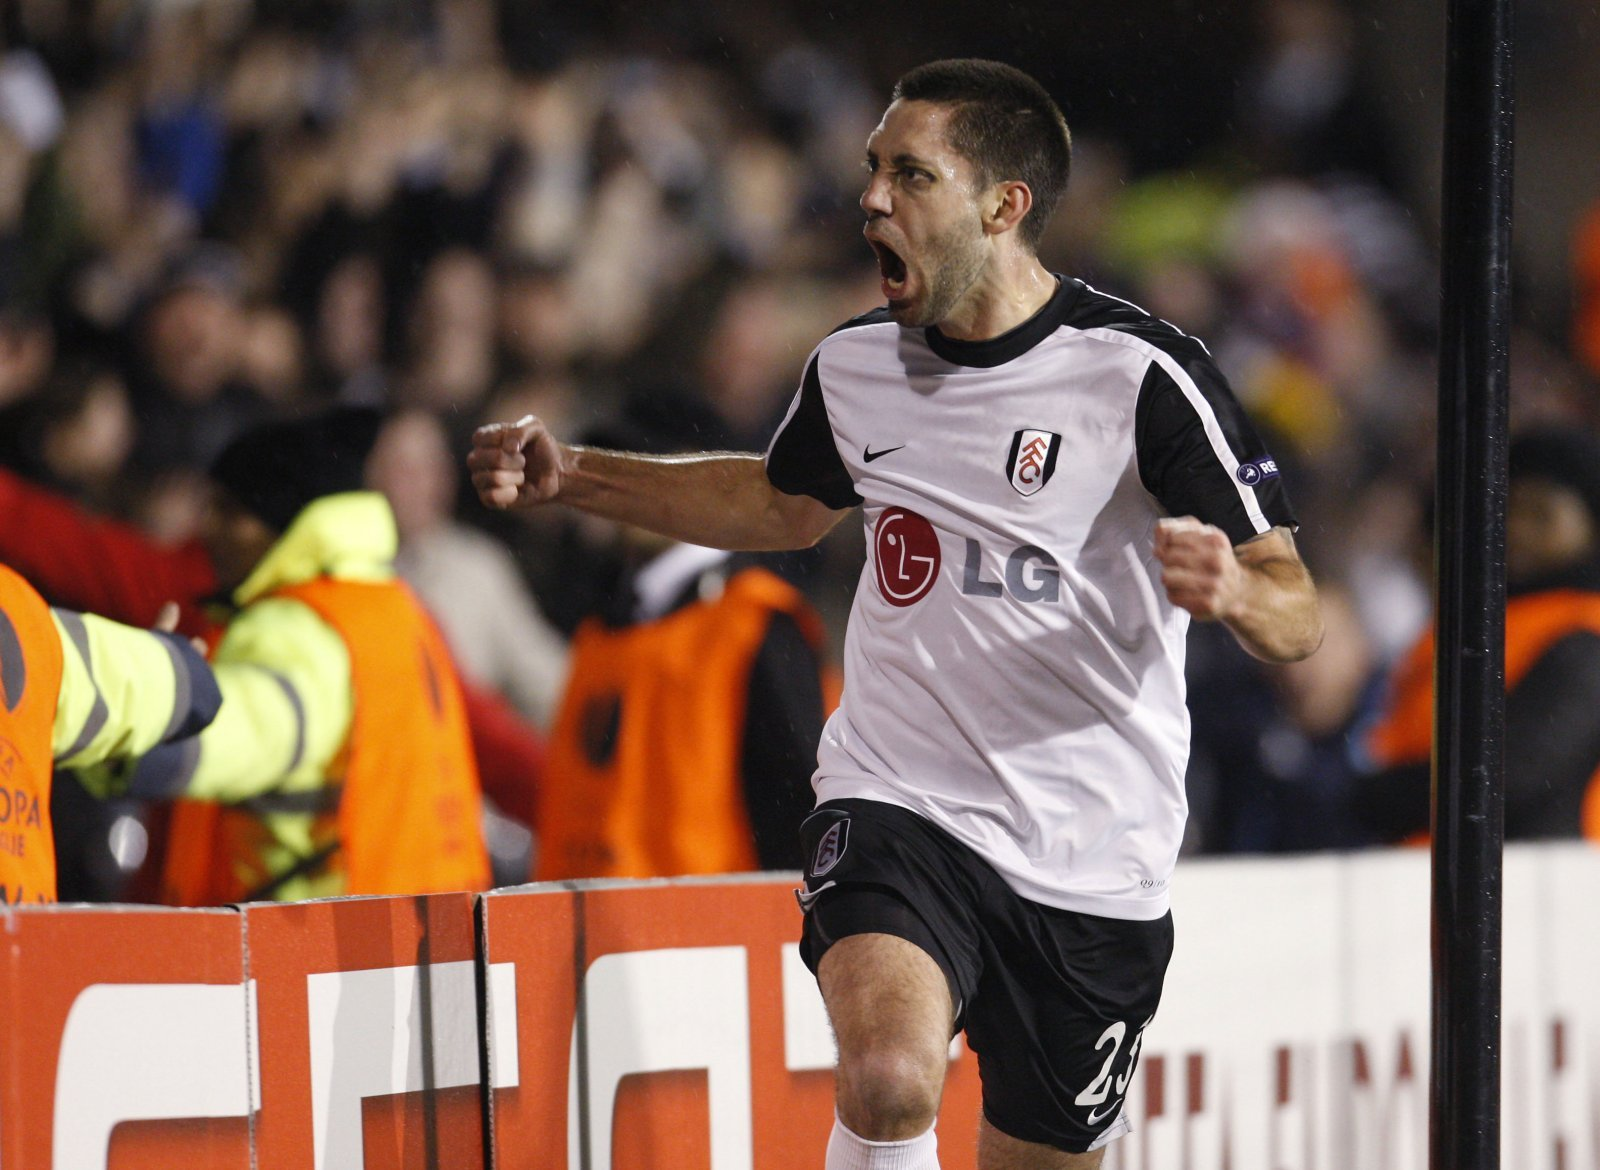 Cult Heroes: Clint Dempsey at Fulham